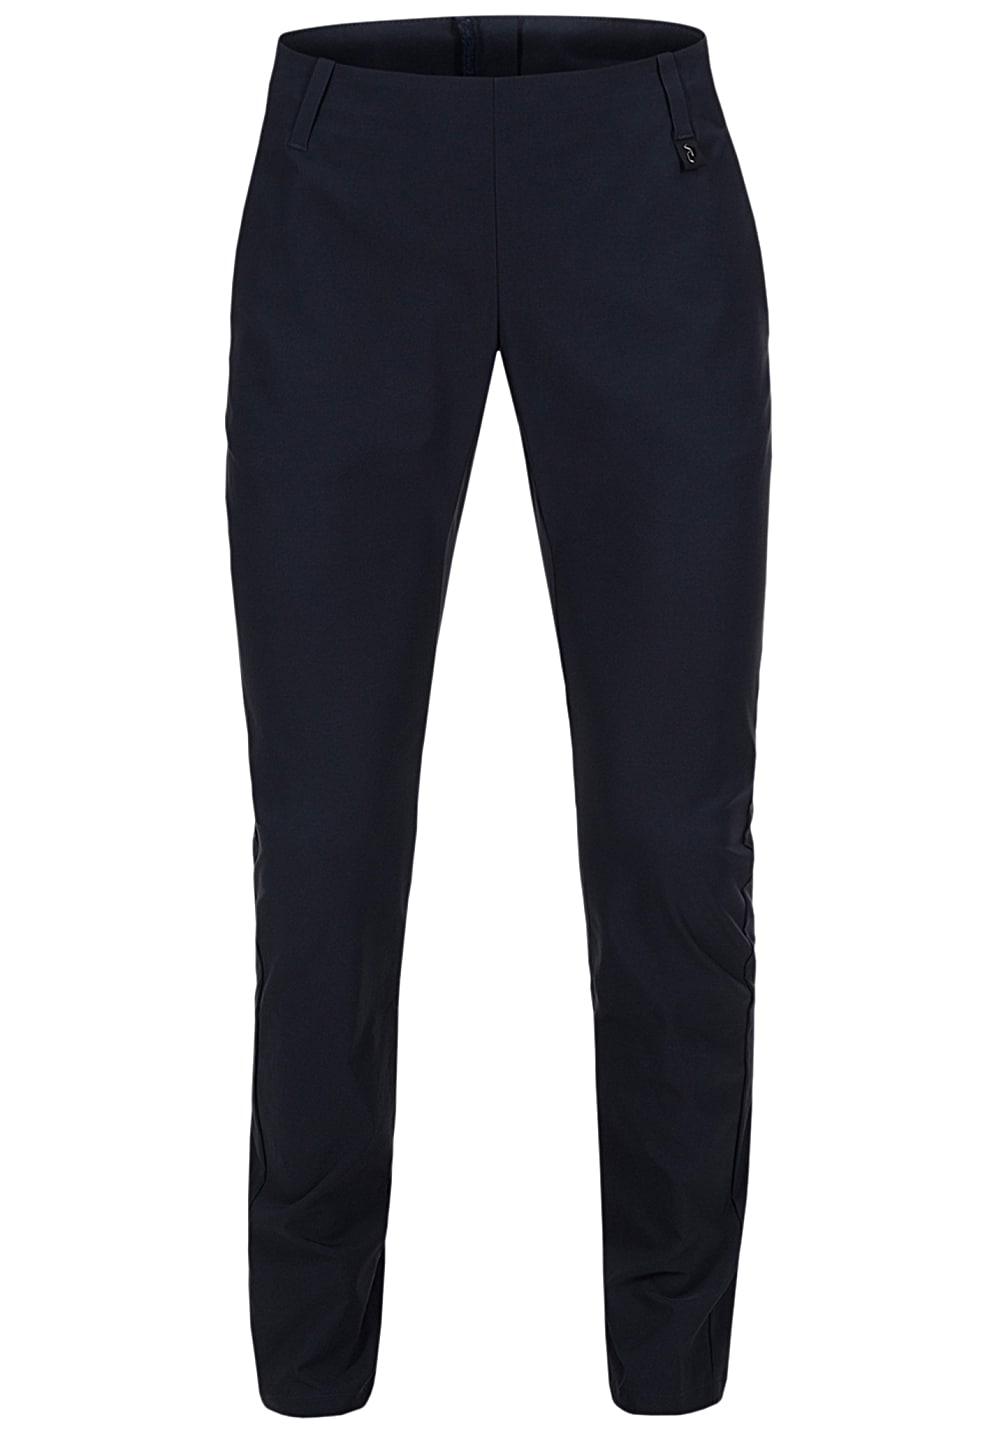 PEAK PERFORMANCE Swinley - Outdoorhose für Damen - Blau